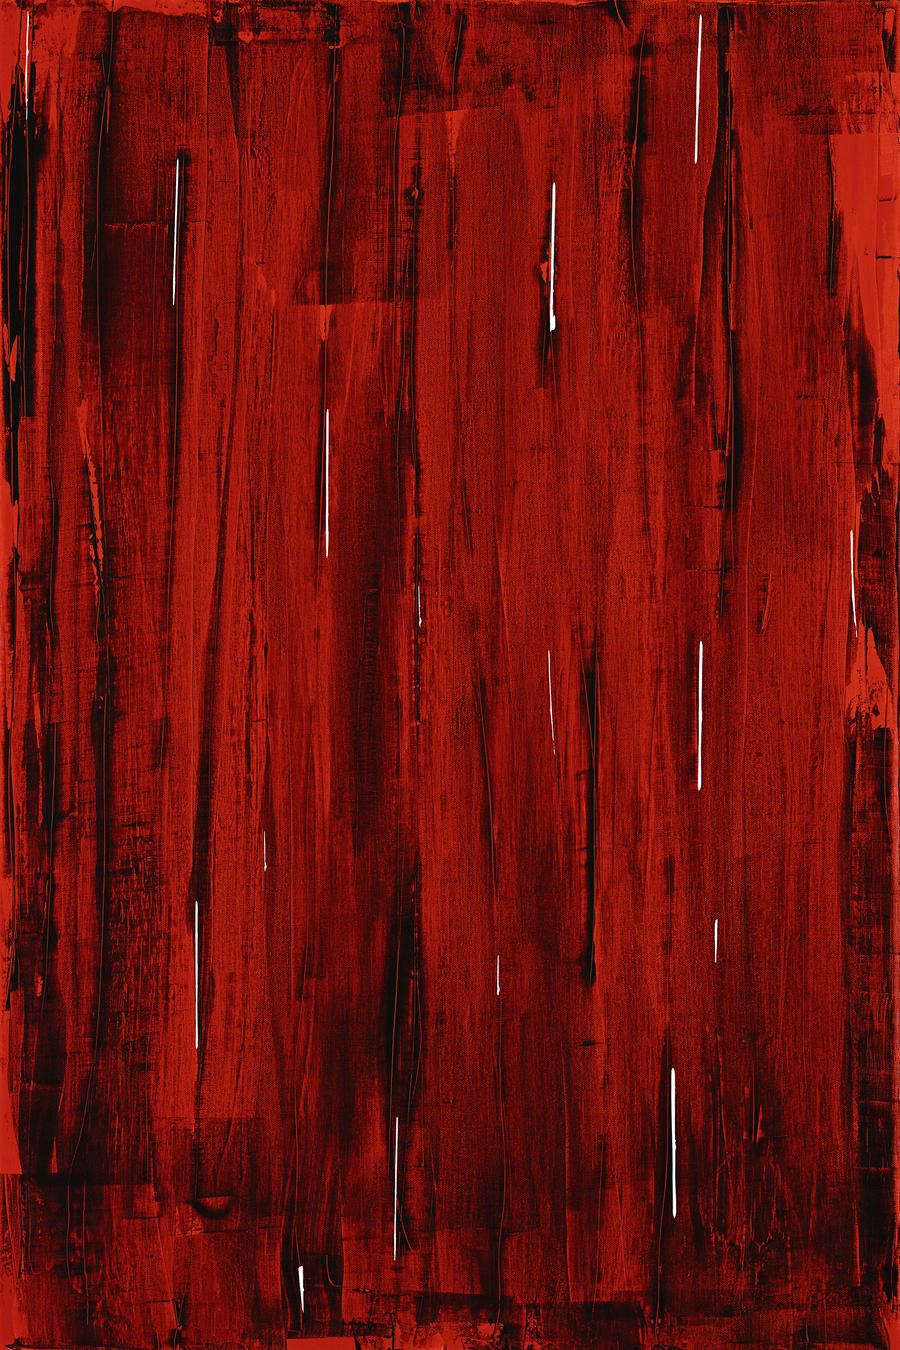 Rain, Abstract Painting In Red And Black (Acrylic Painting).  imprimons